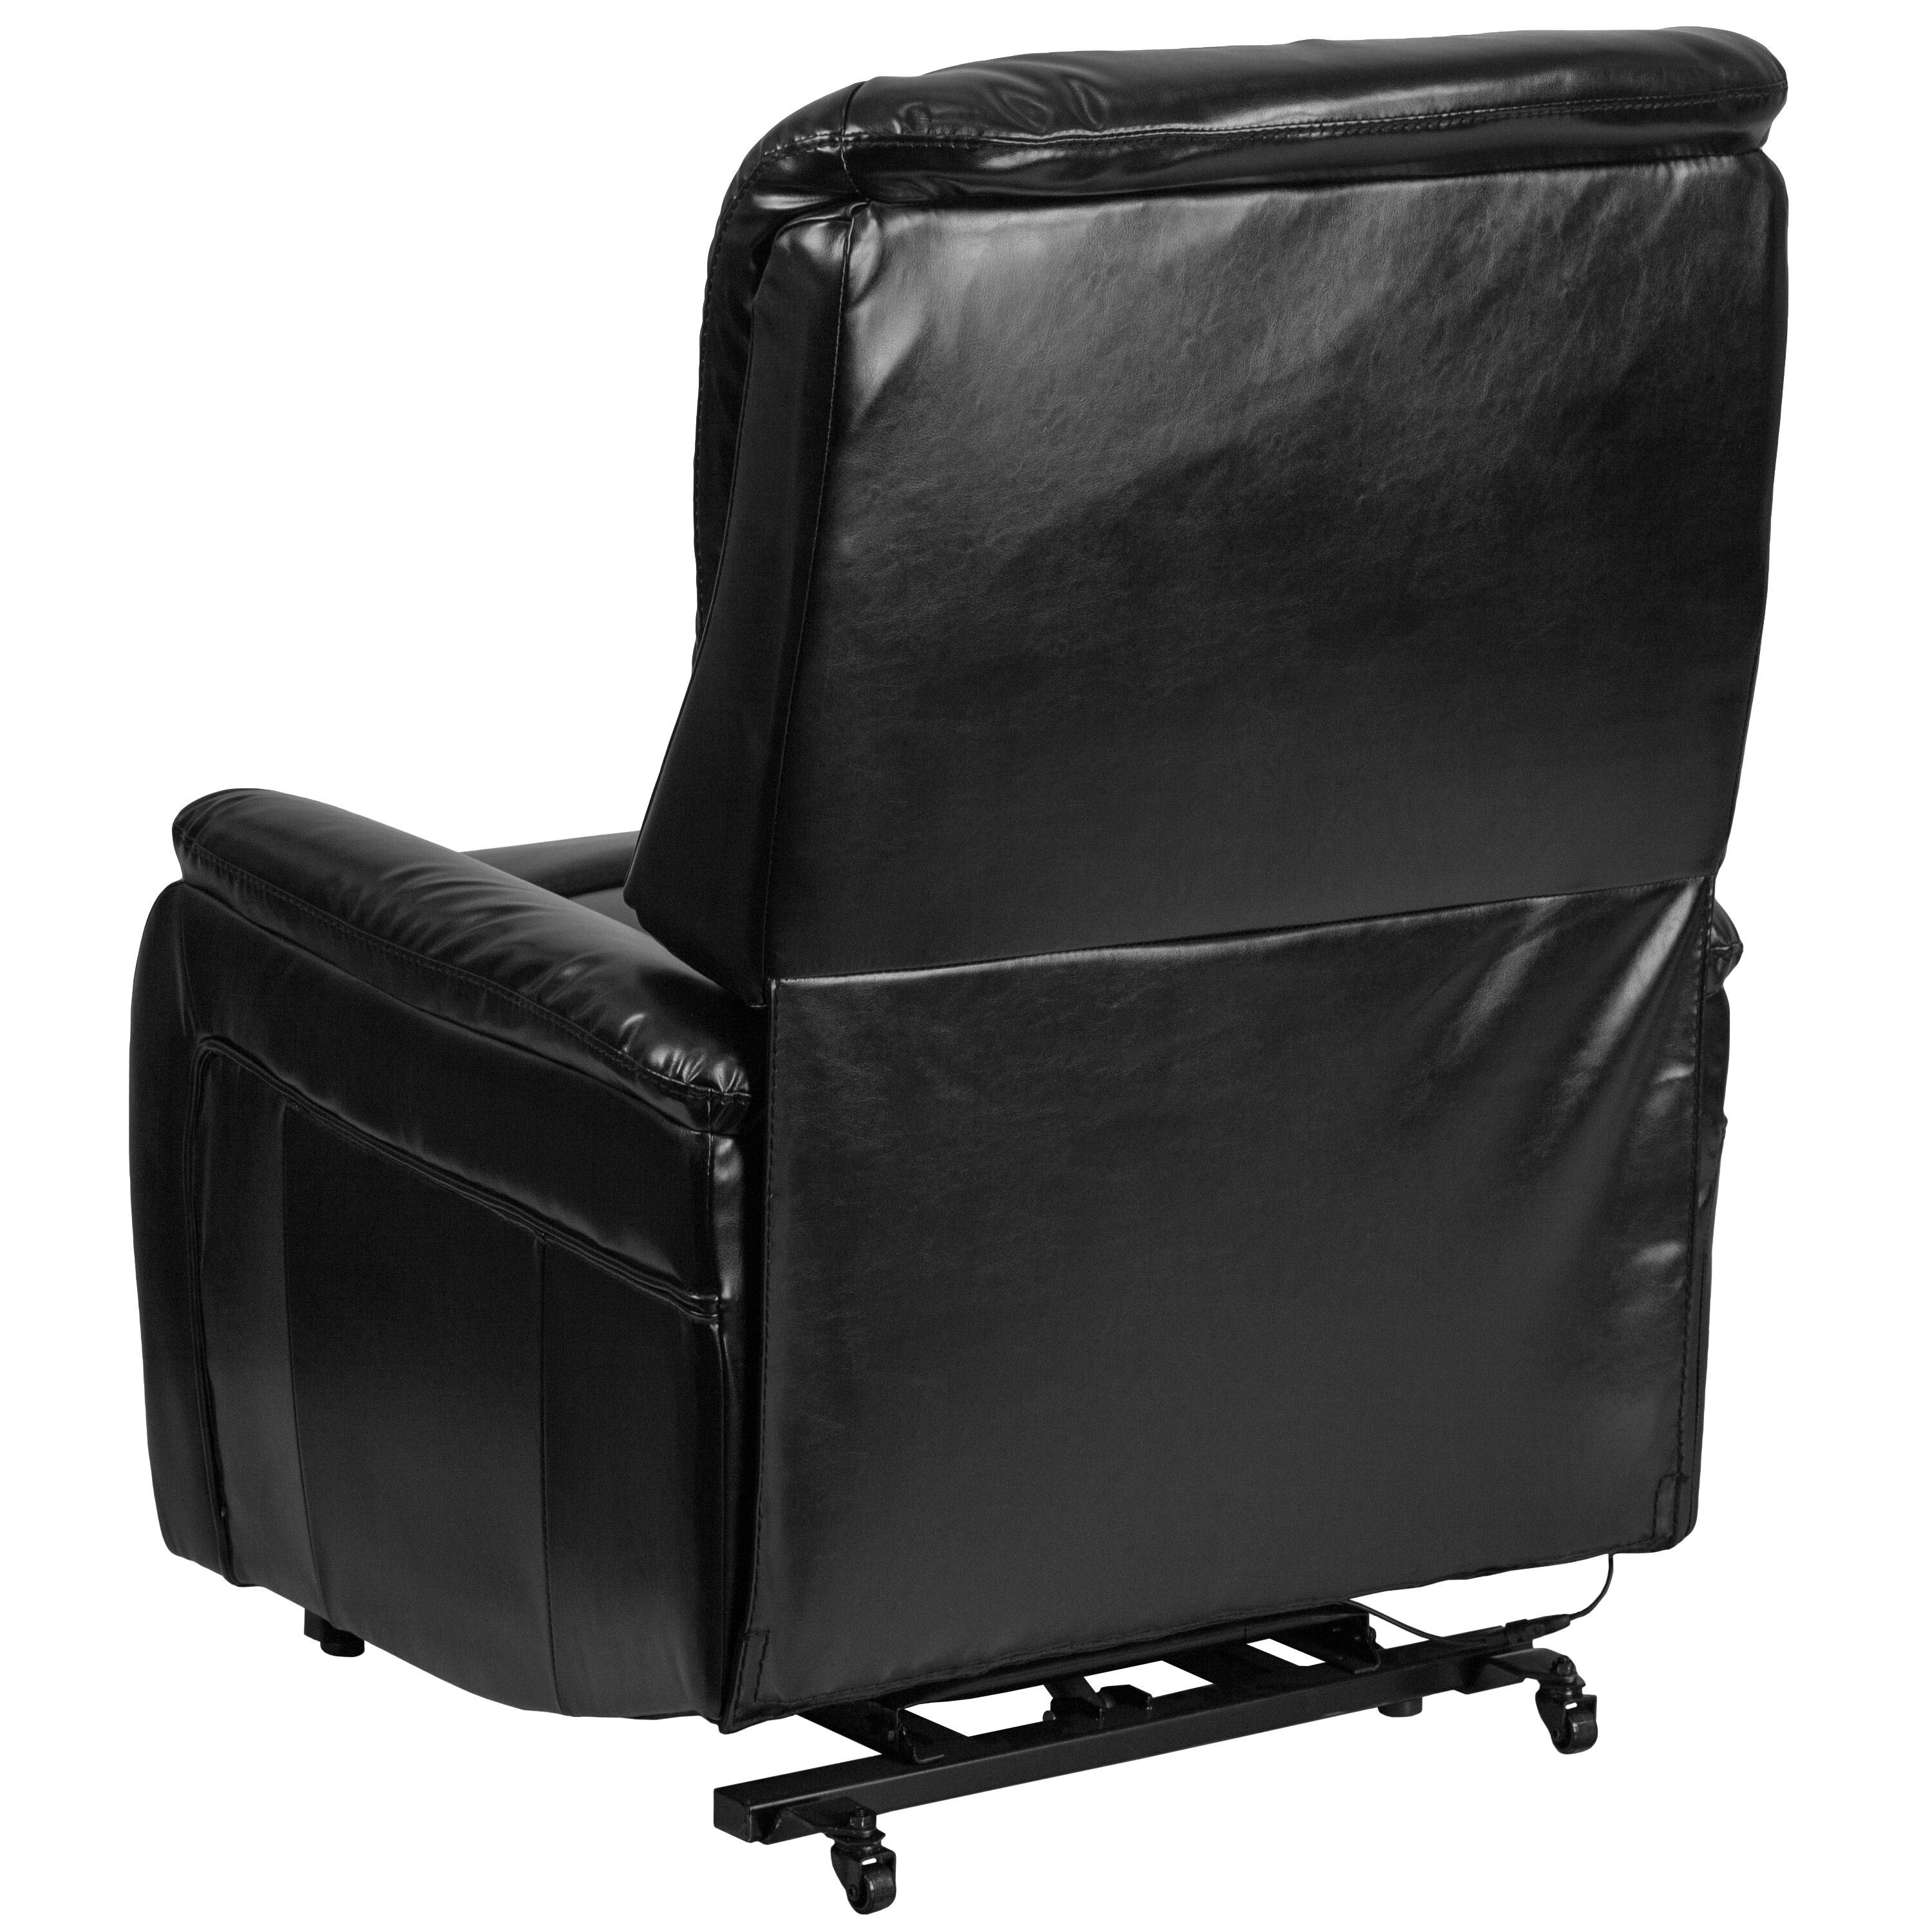 Charmant Our HERCULES Series Remote Powered Lift Recliner Is On Sale Now.